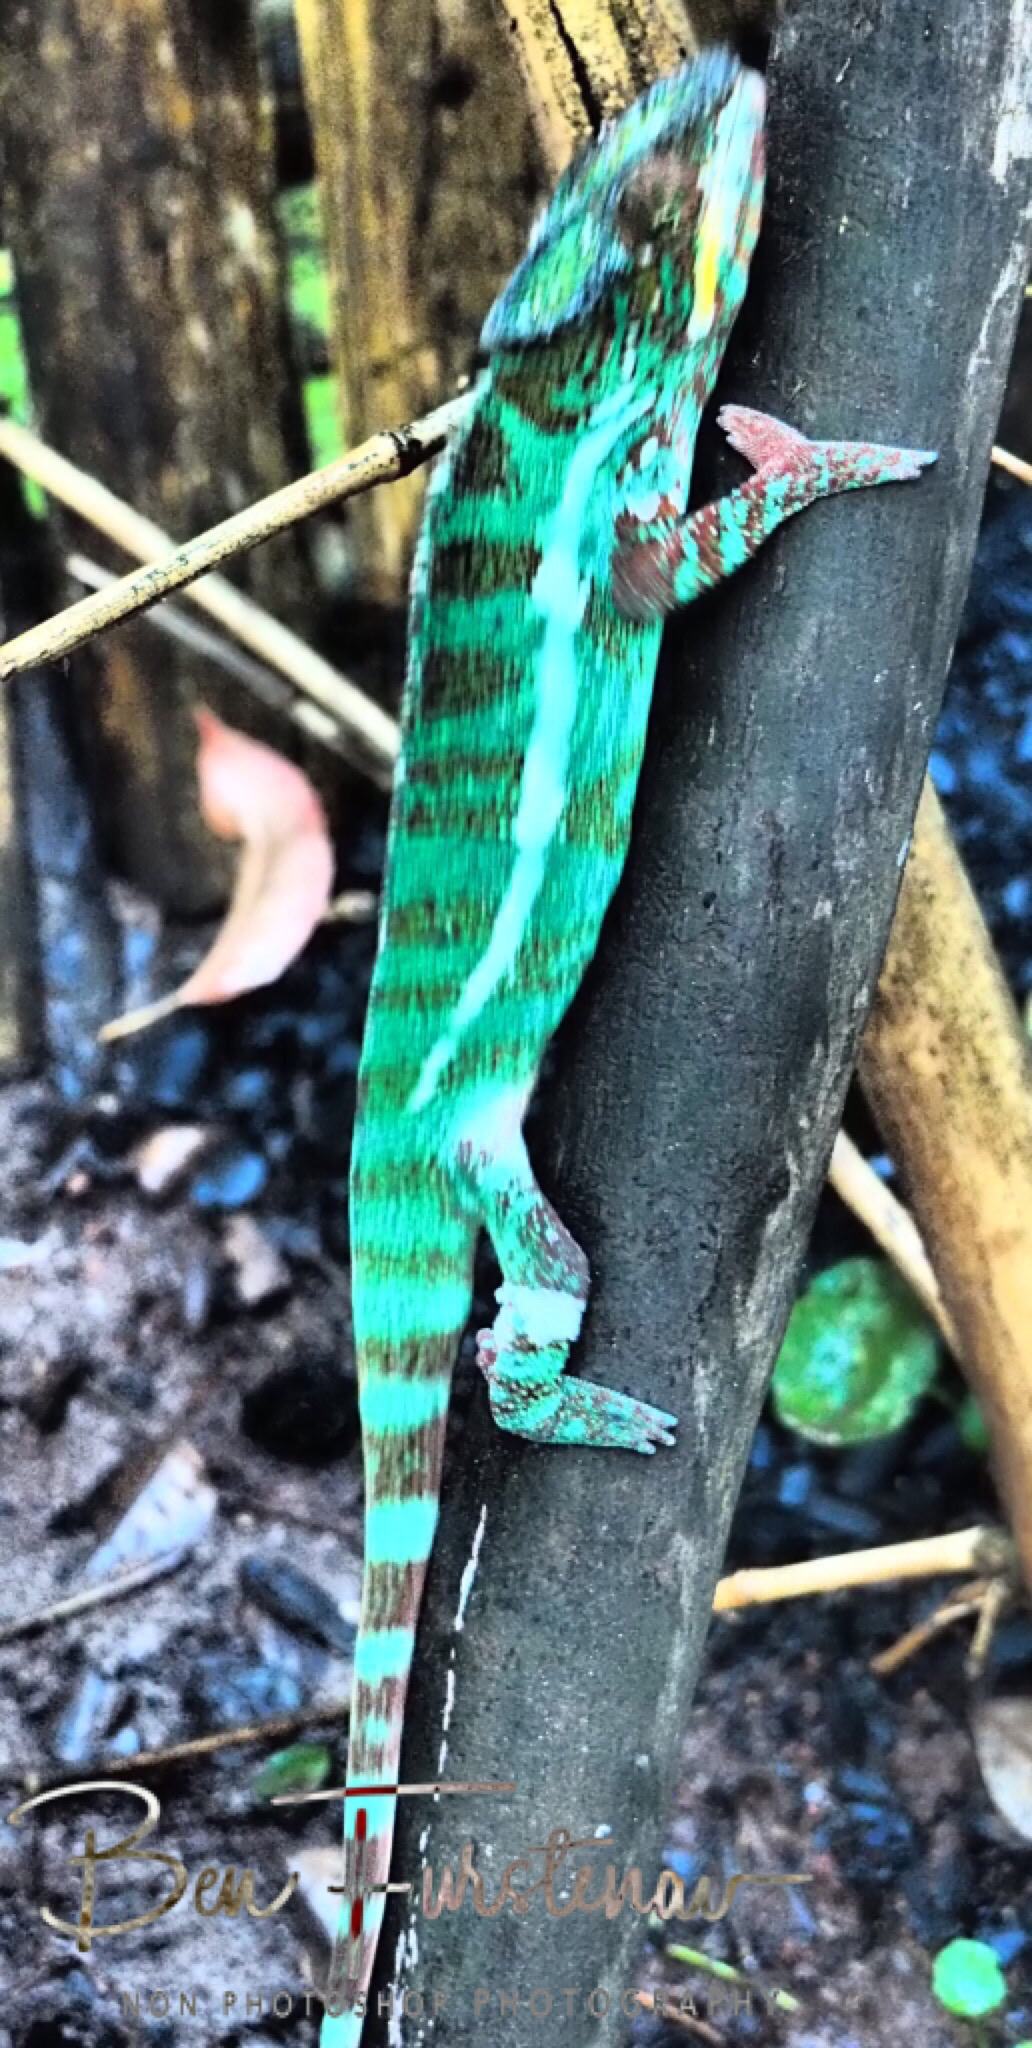 Colourful chameleon